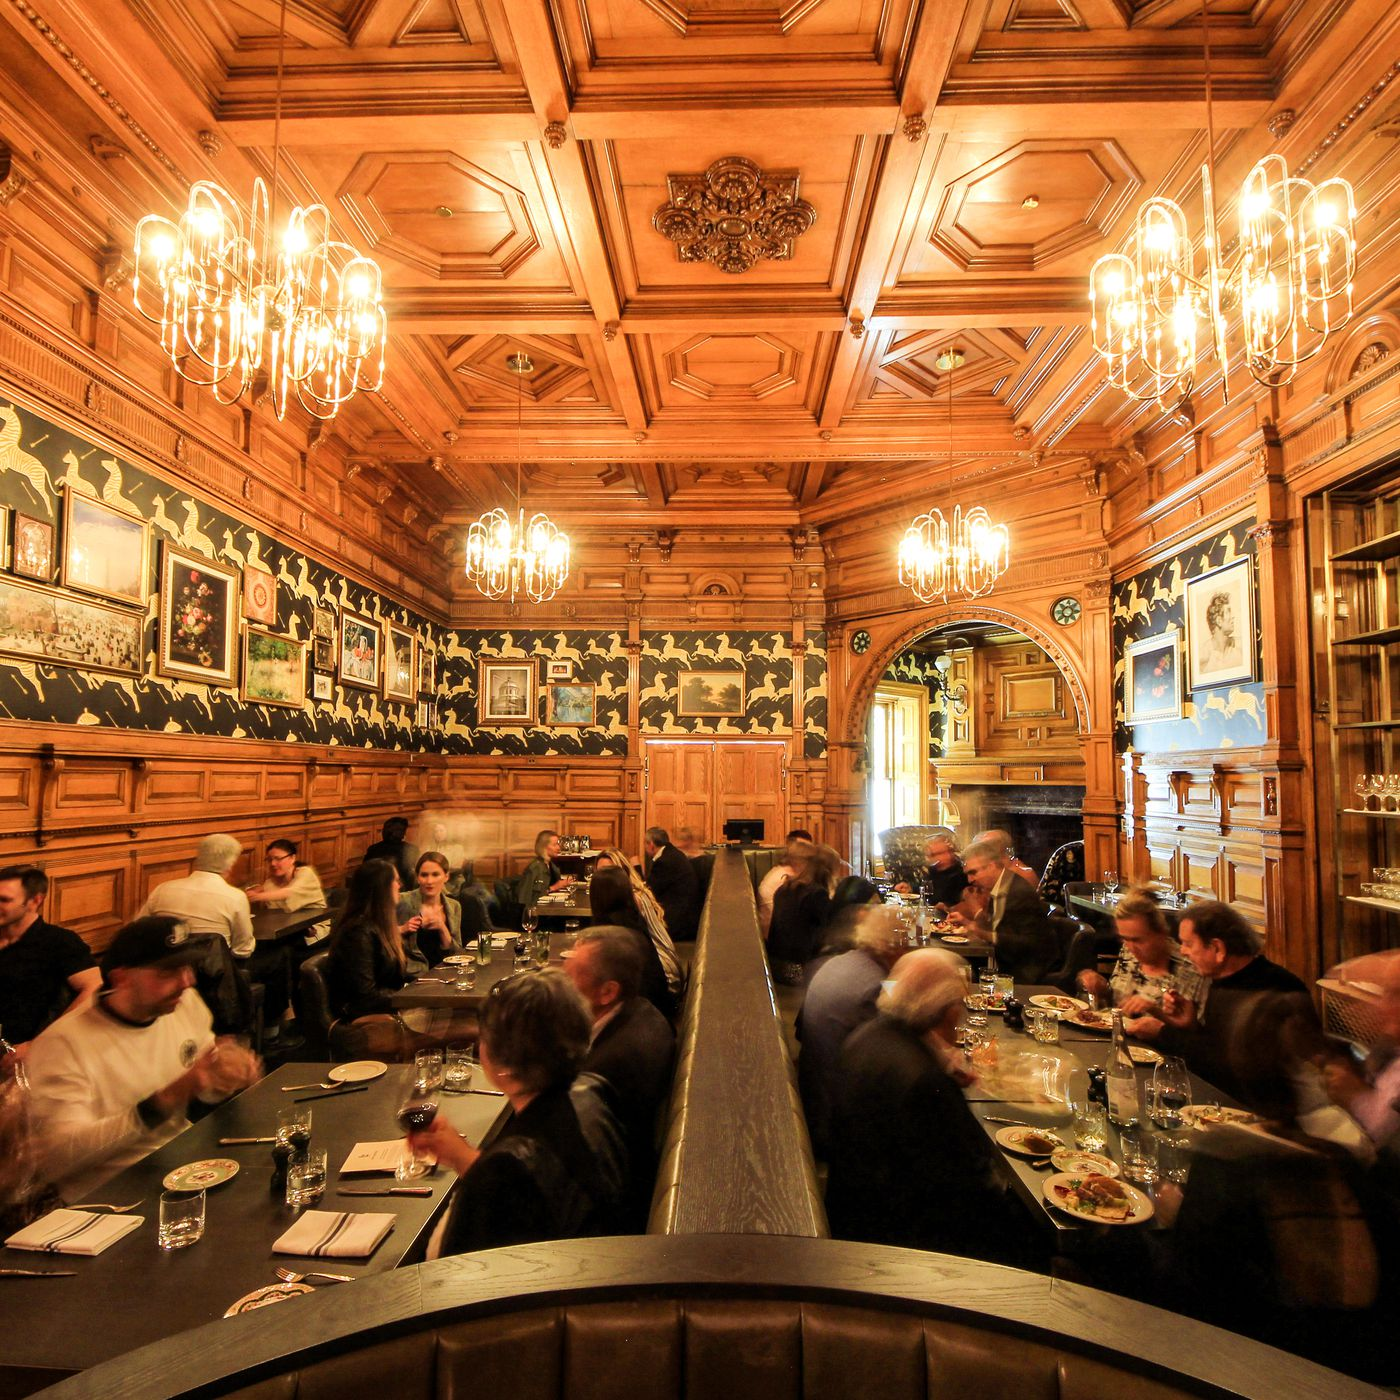 Bar George In Hotel Mount Stephen Gets A Warm First Review